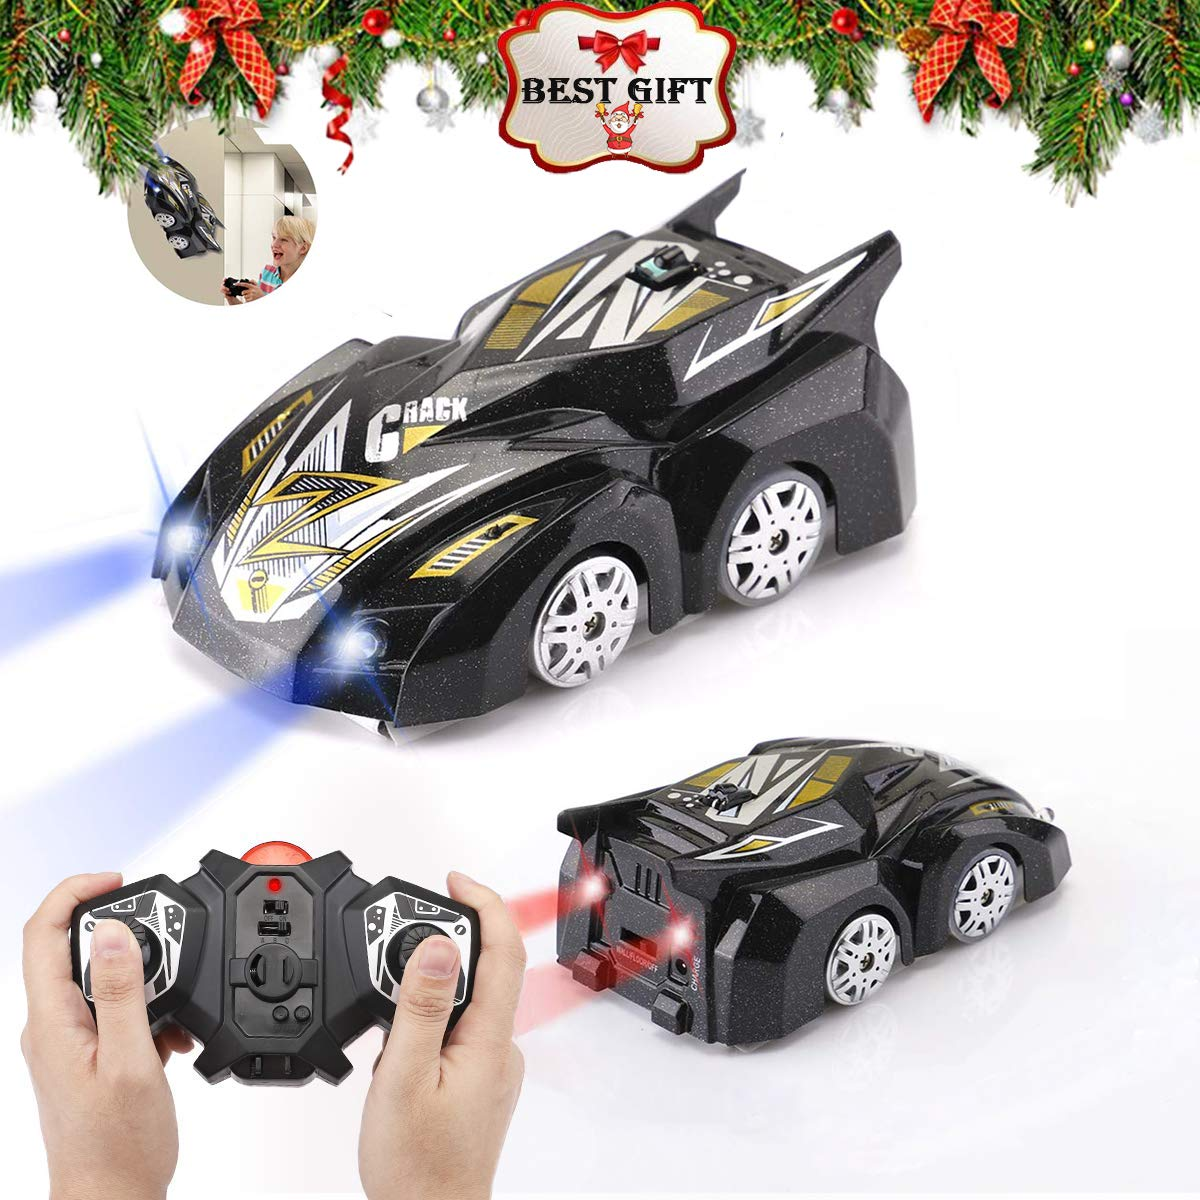 Morpilot Remote Control Car Toy, Rechargeable Wall Climbing Climber Car with New Remote Control, Dual Mode 360° Rotating Stunt Car Racing Vehicle, LED Head Gravity-Defying, Gift for Kids Boy Girl Birthday